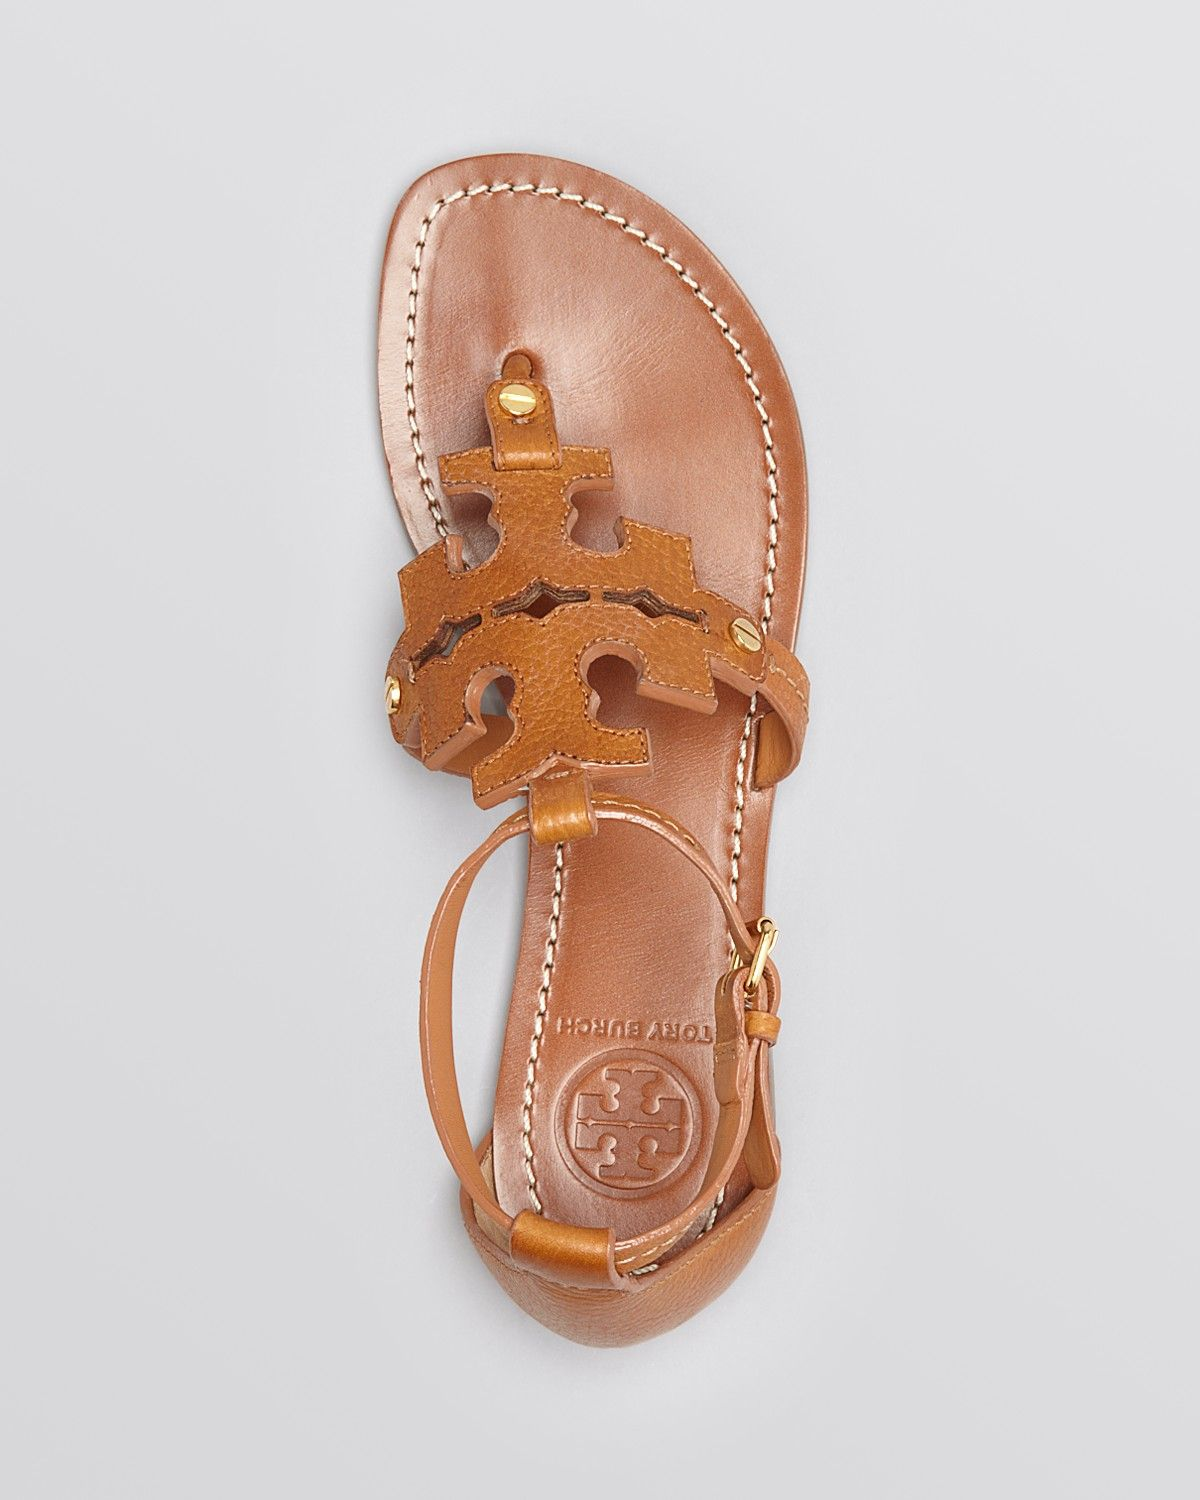 bde234901 Um...GETTING THESE . Tory Burch Flat Thong Sandals - Phoebe ...